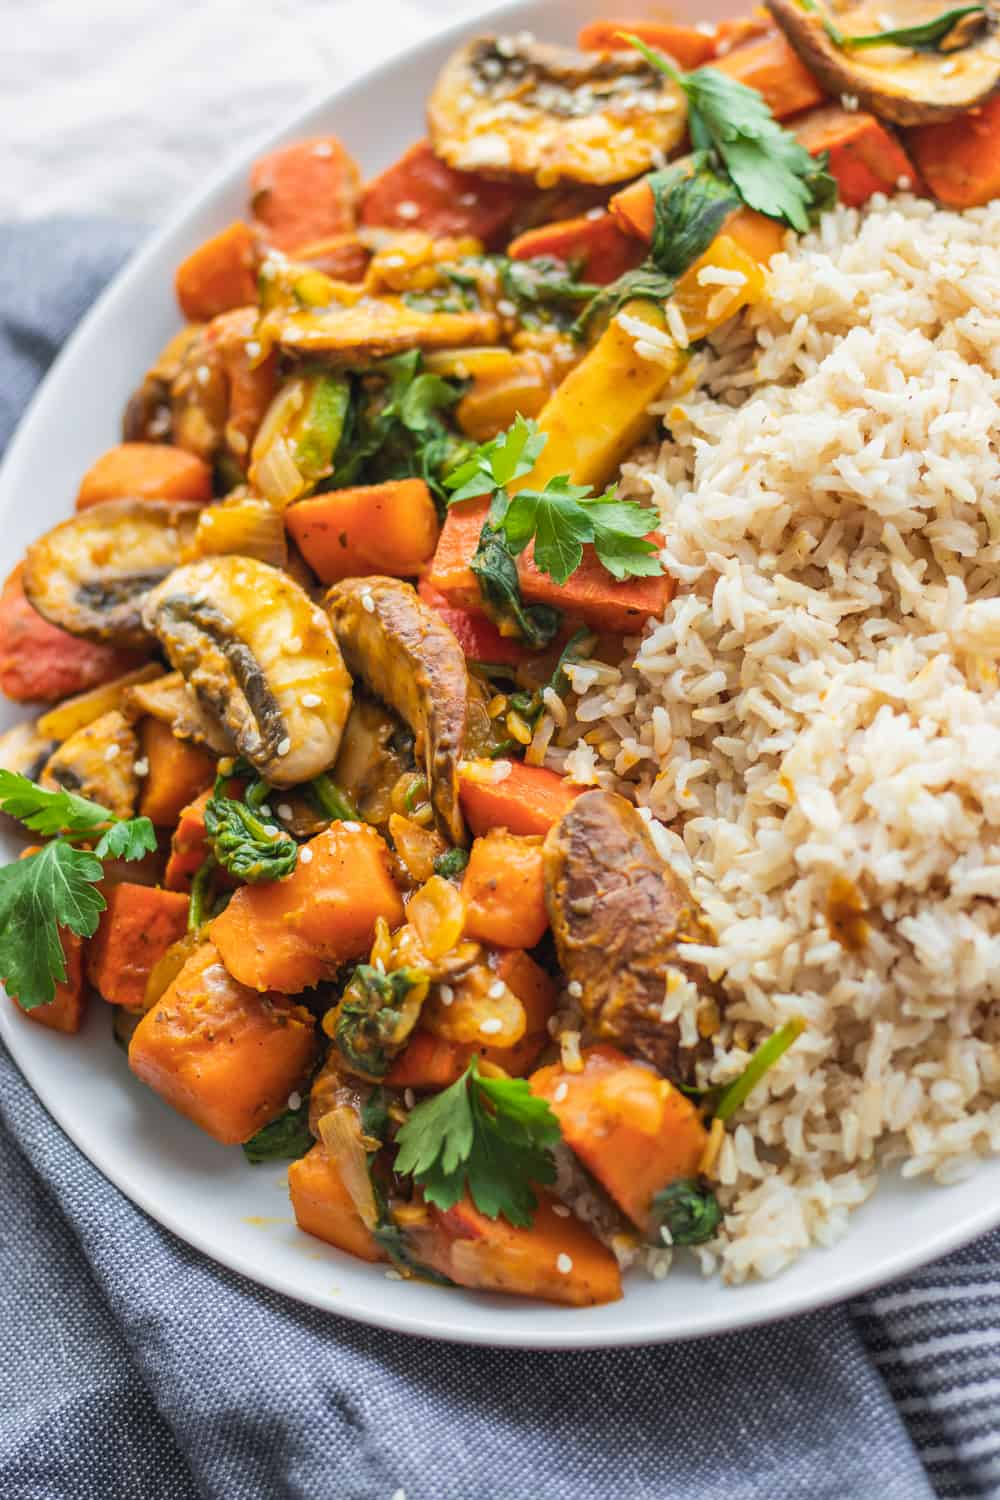 Vegan pumpkin and vegetable stir-fry with brown rice